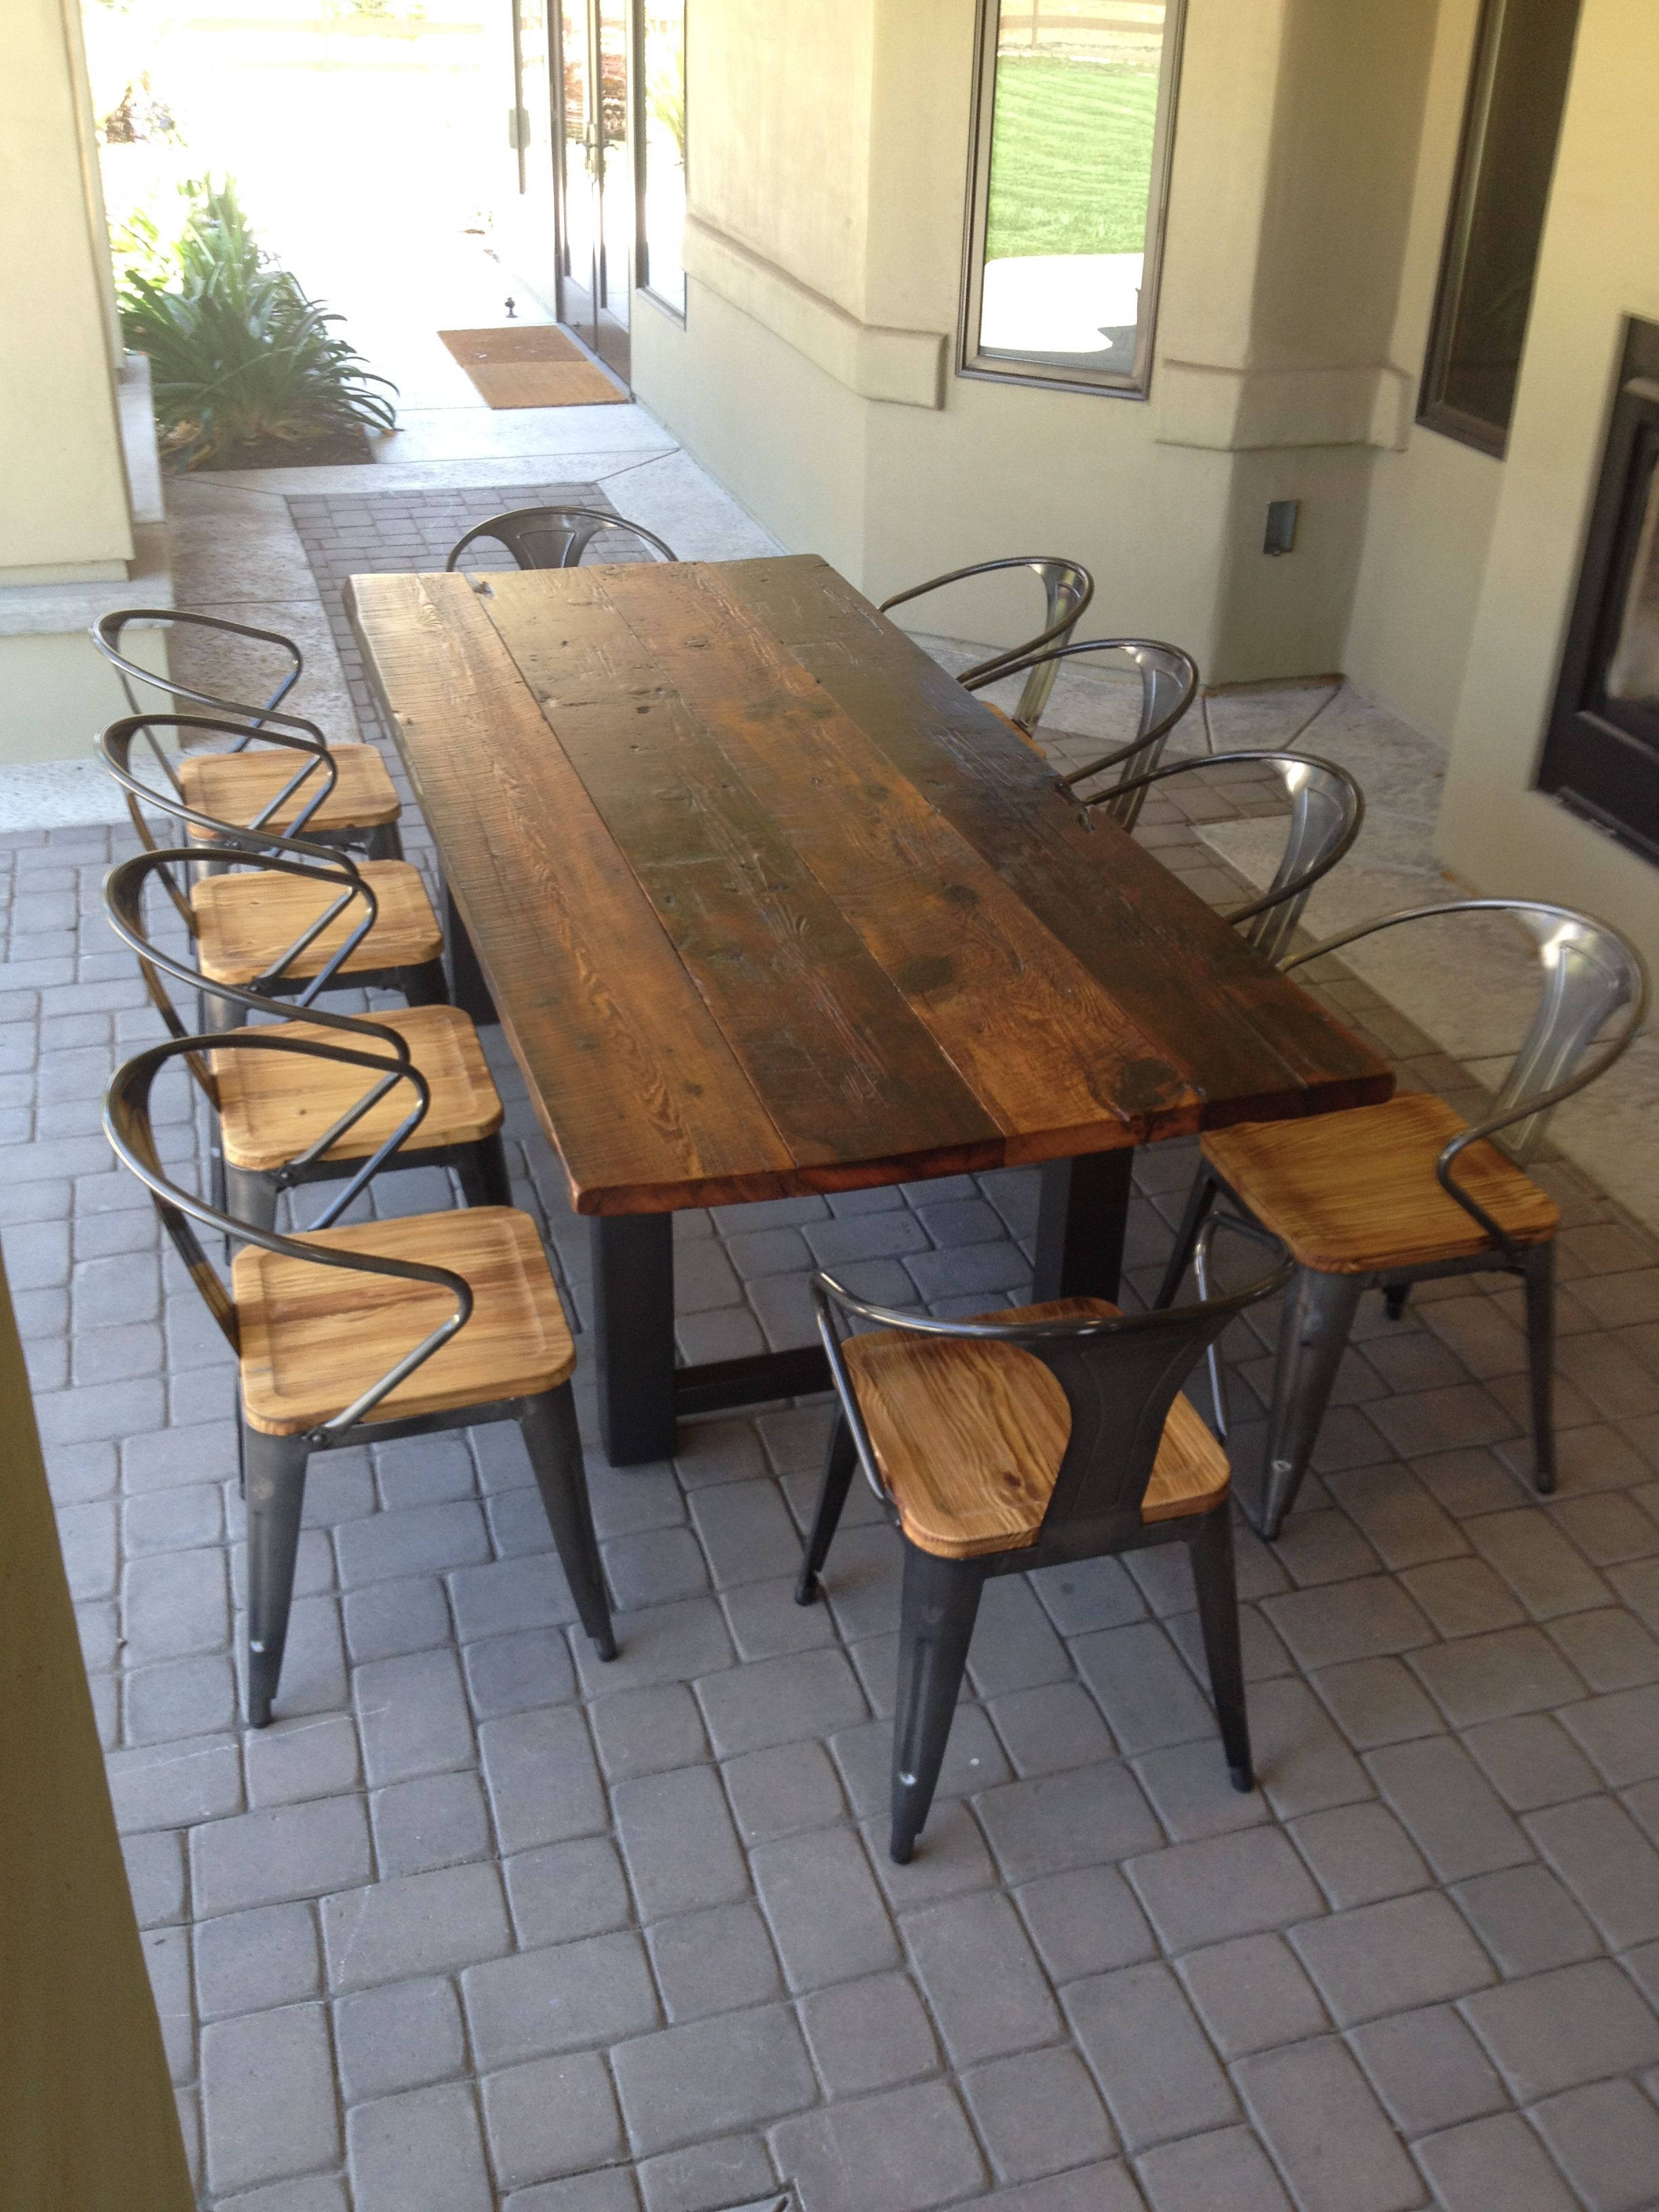 Reclaimed Wood And Steel Outdoor Dining Table 1 The Coastal Craftsman Pin